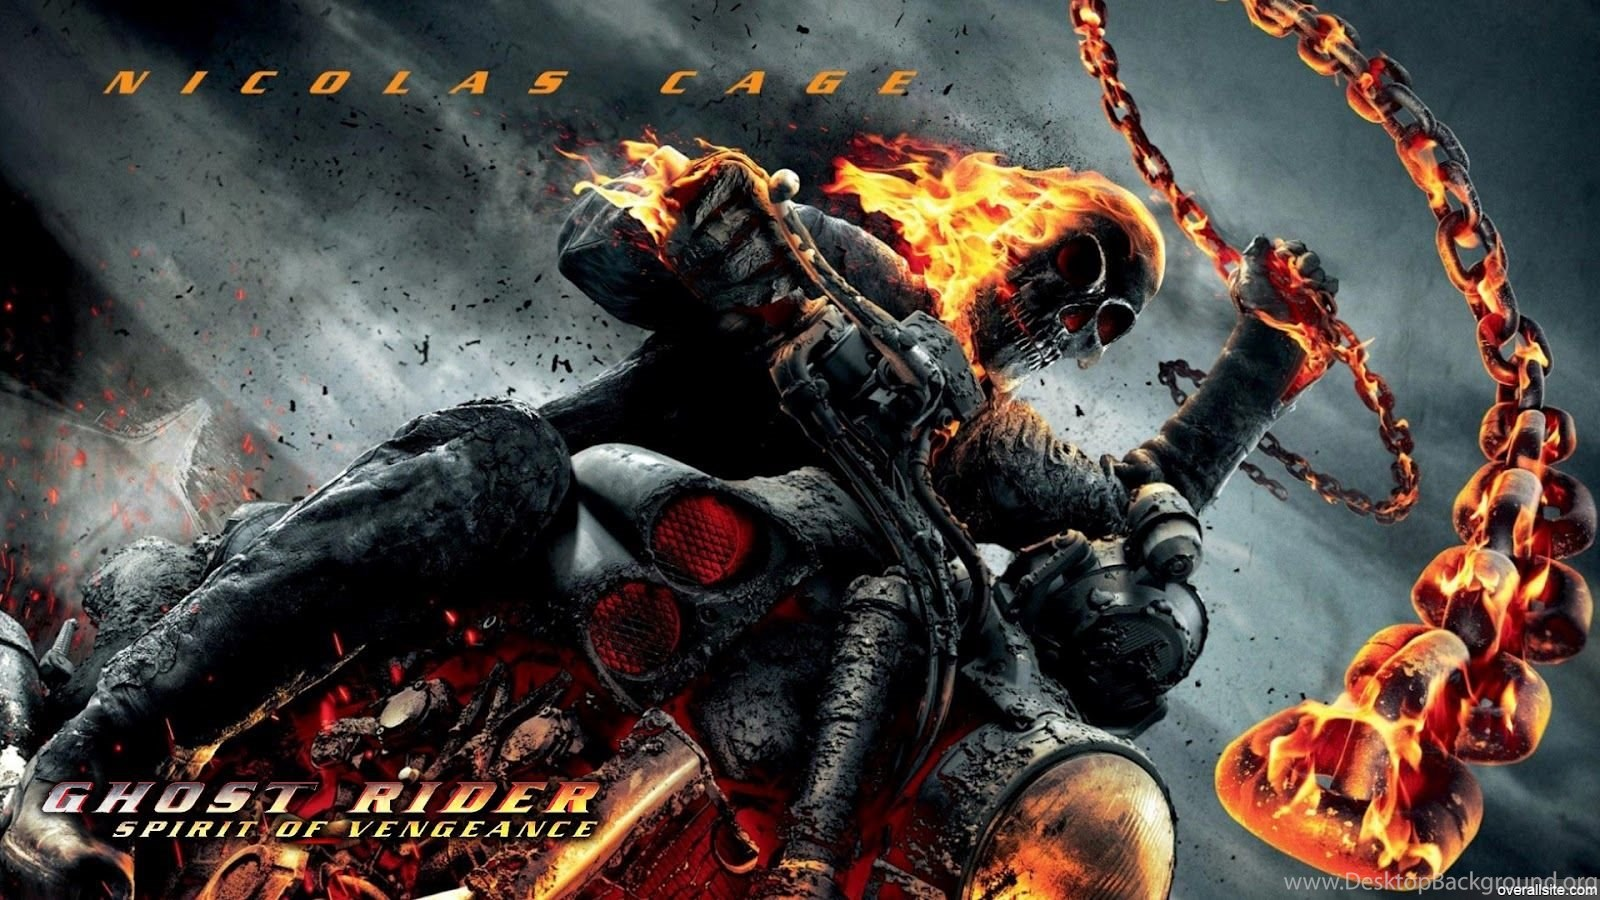 ghost rider hd wallpapers wallpapers cave desktop background